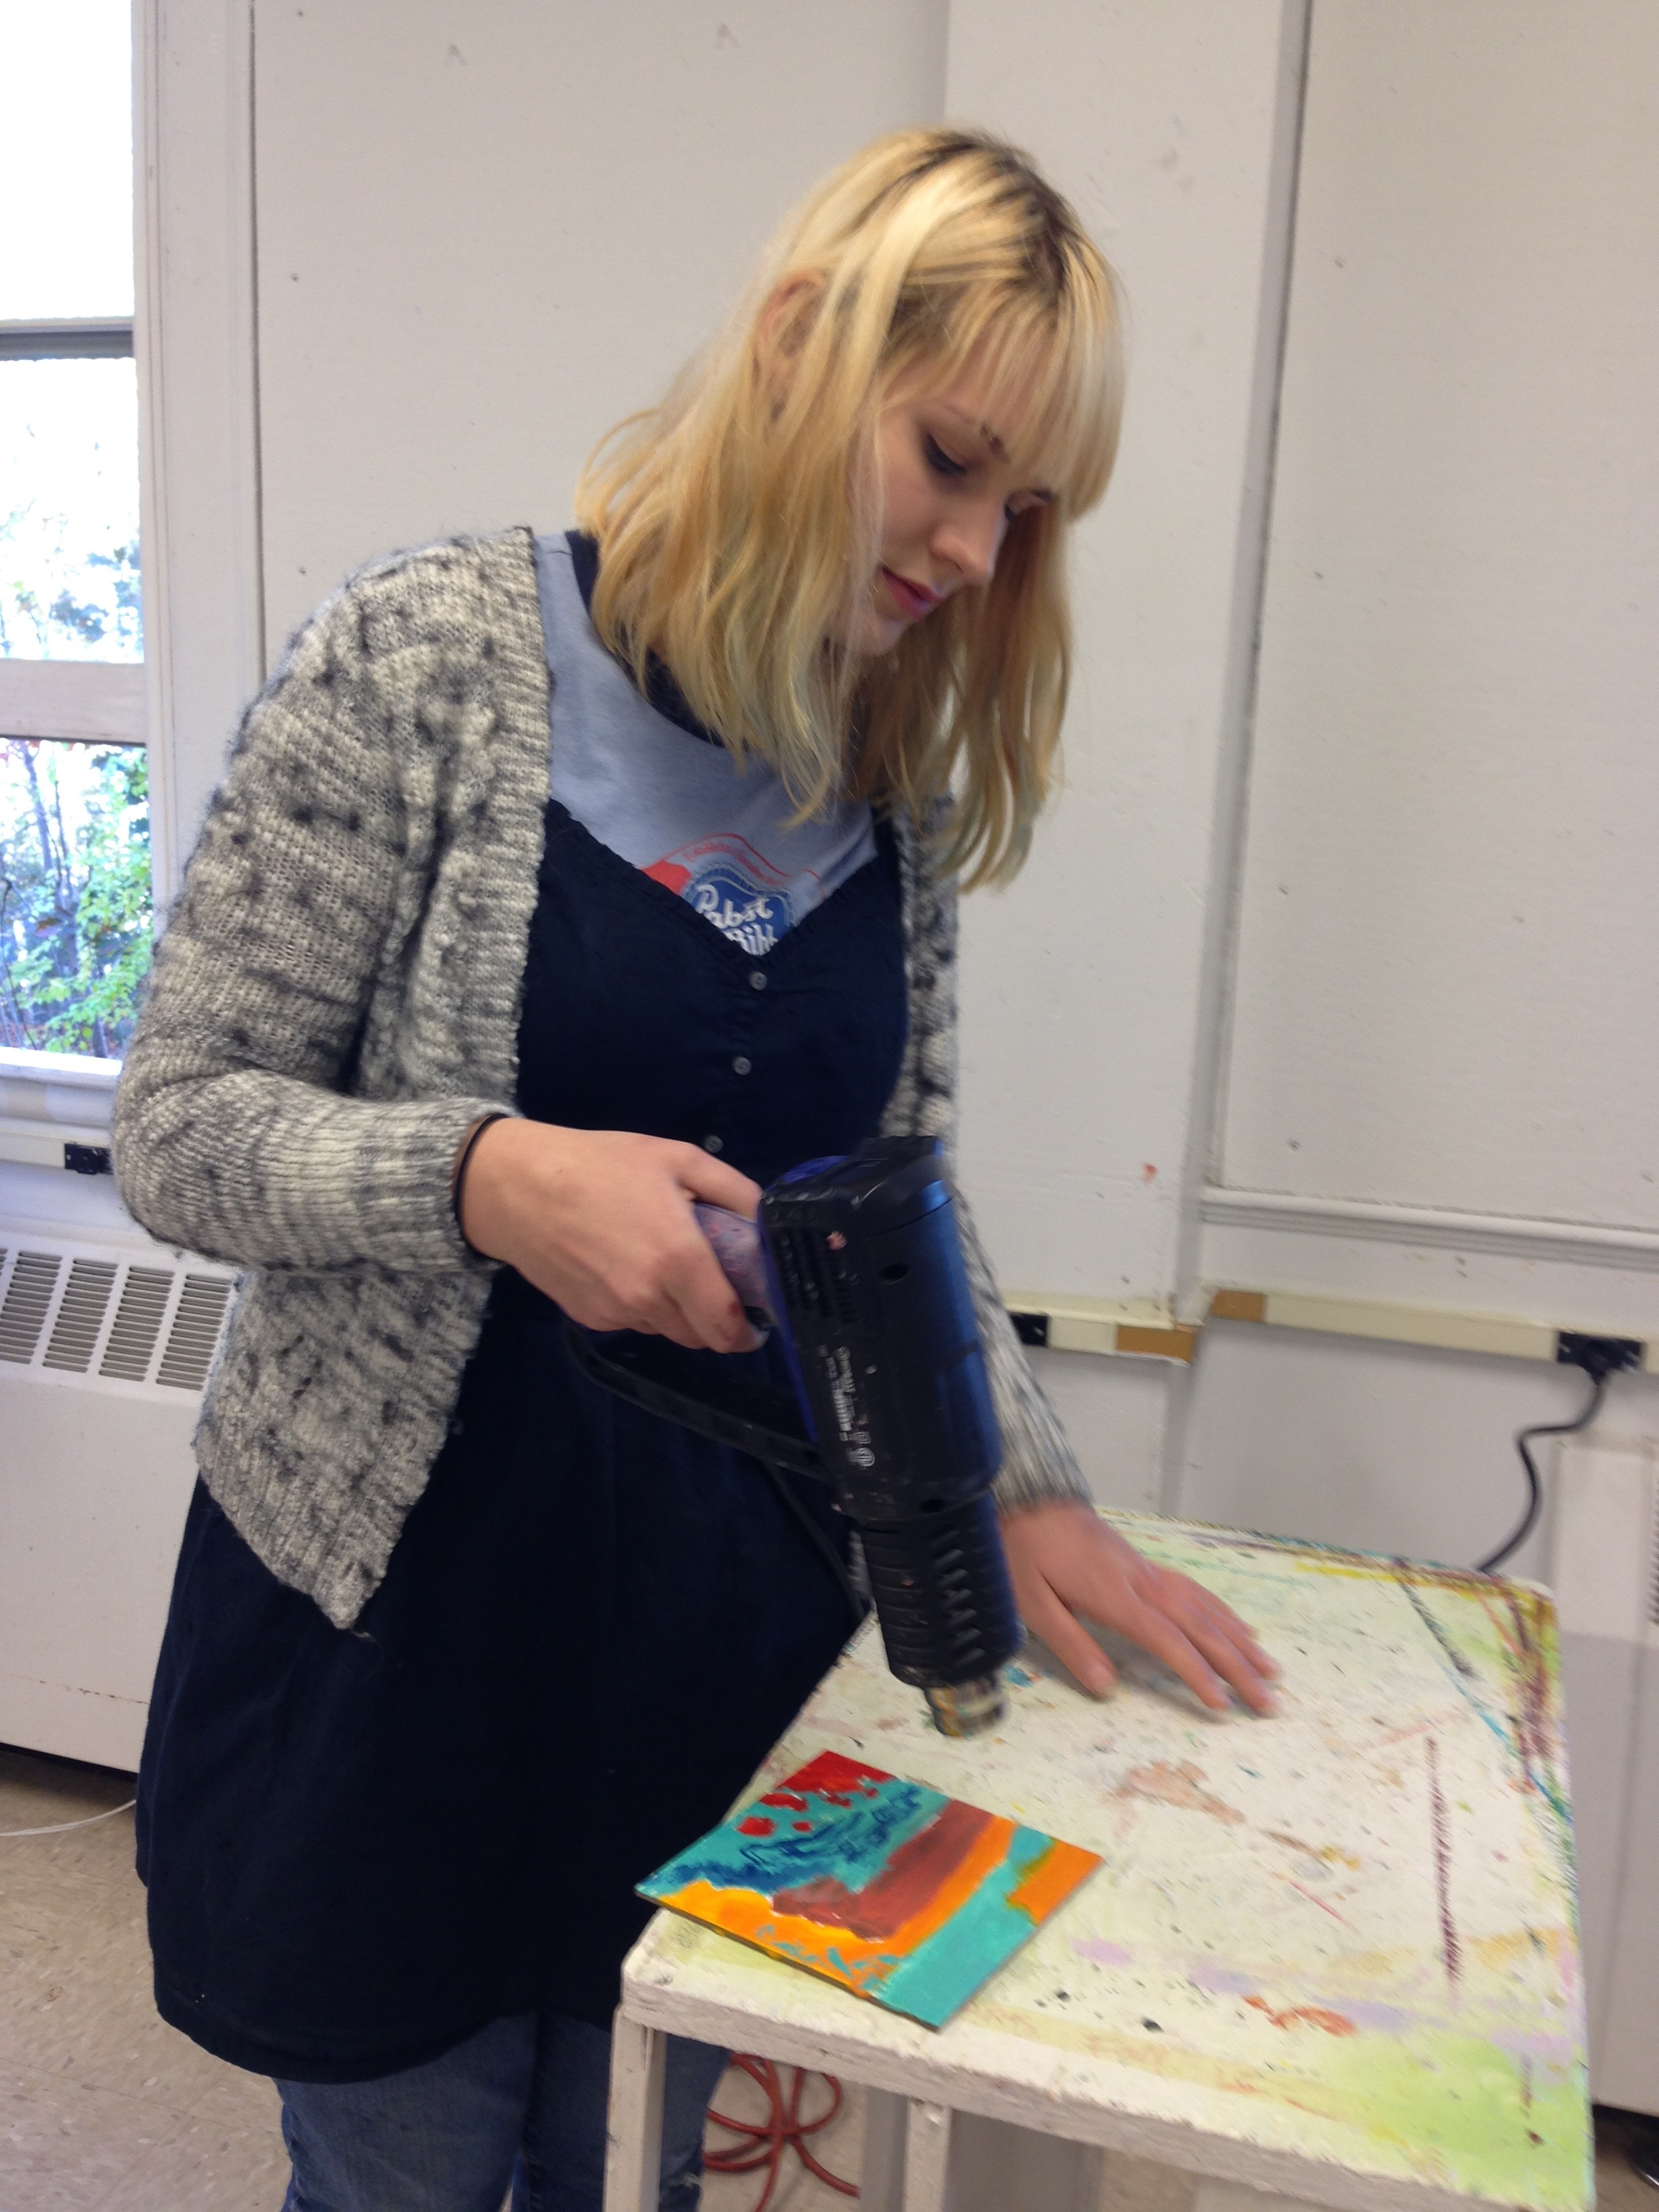 Student working on encaustic project